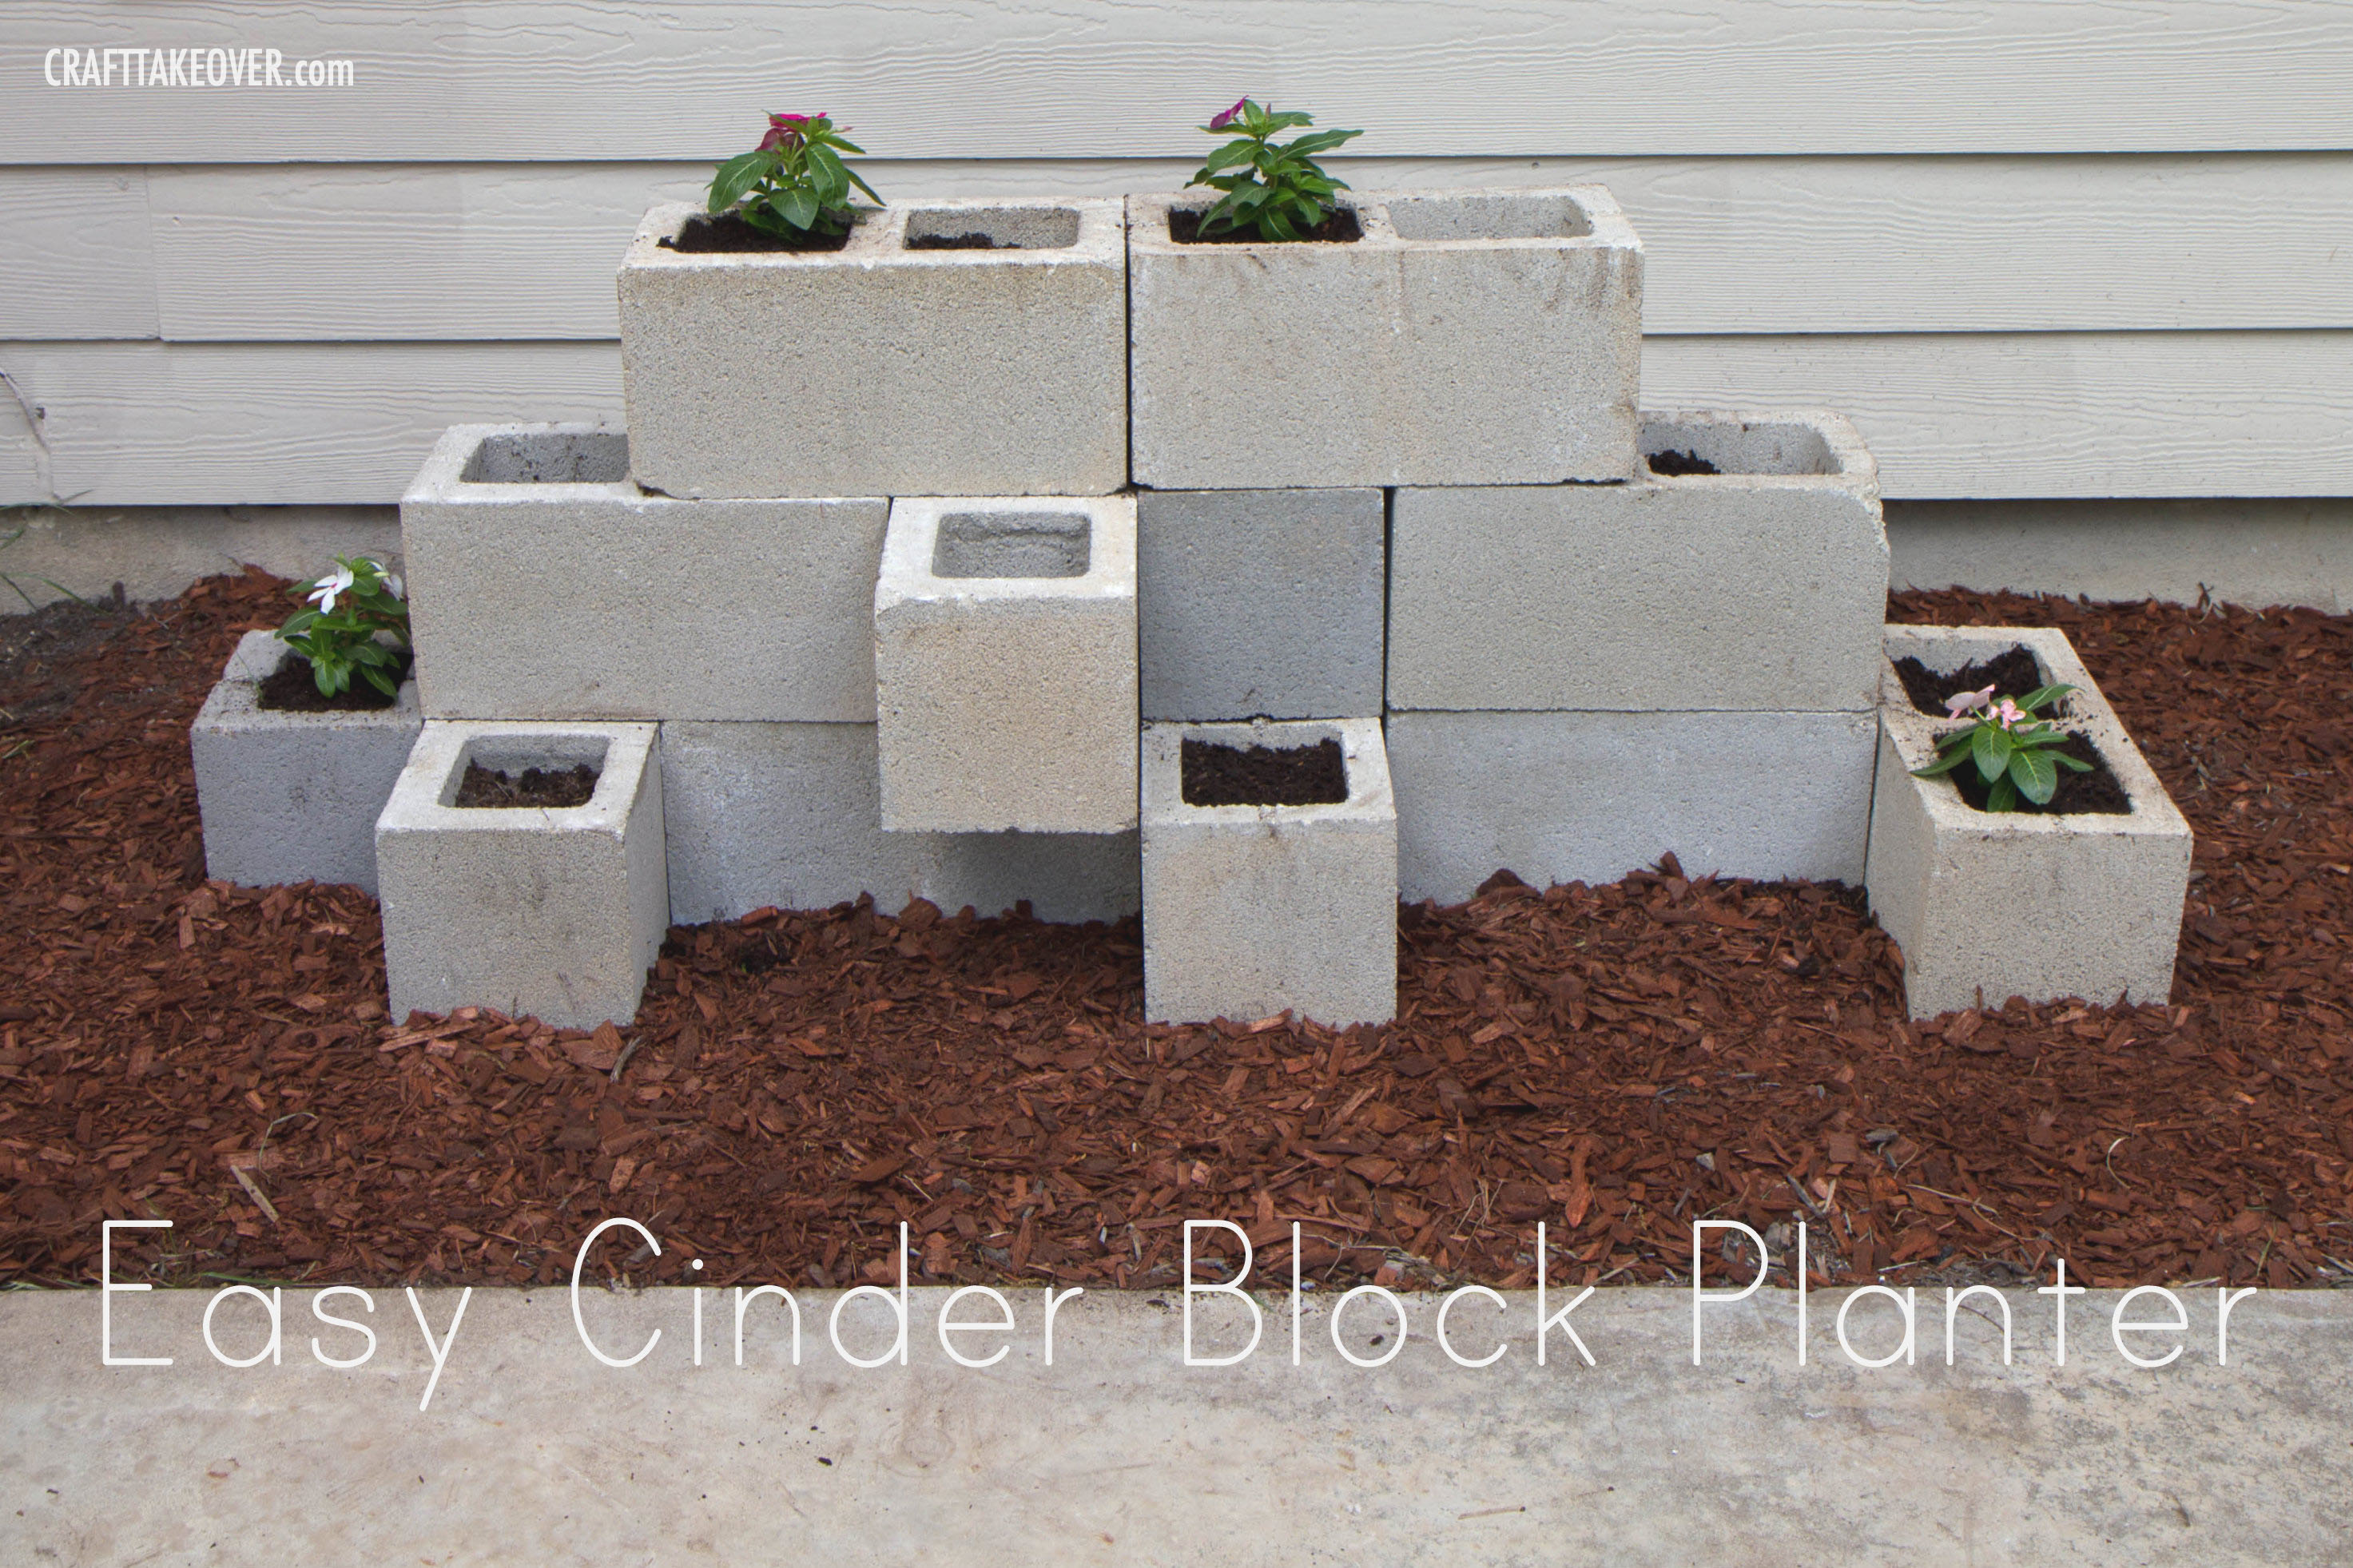 easy cinder block planter craft takeover. Black Bedroom Furniture Sets. Home Design Ideas